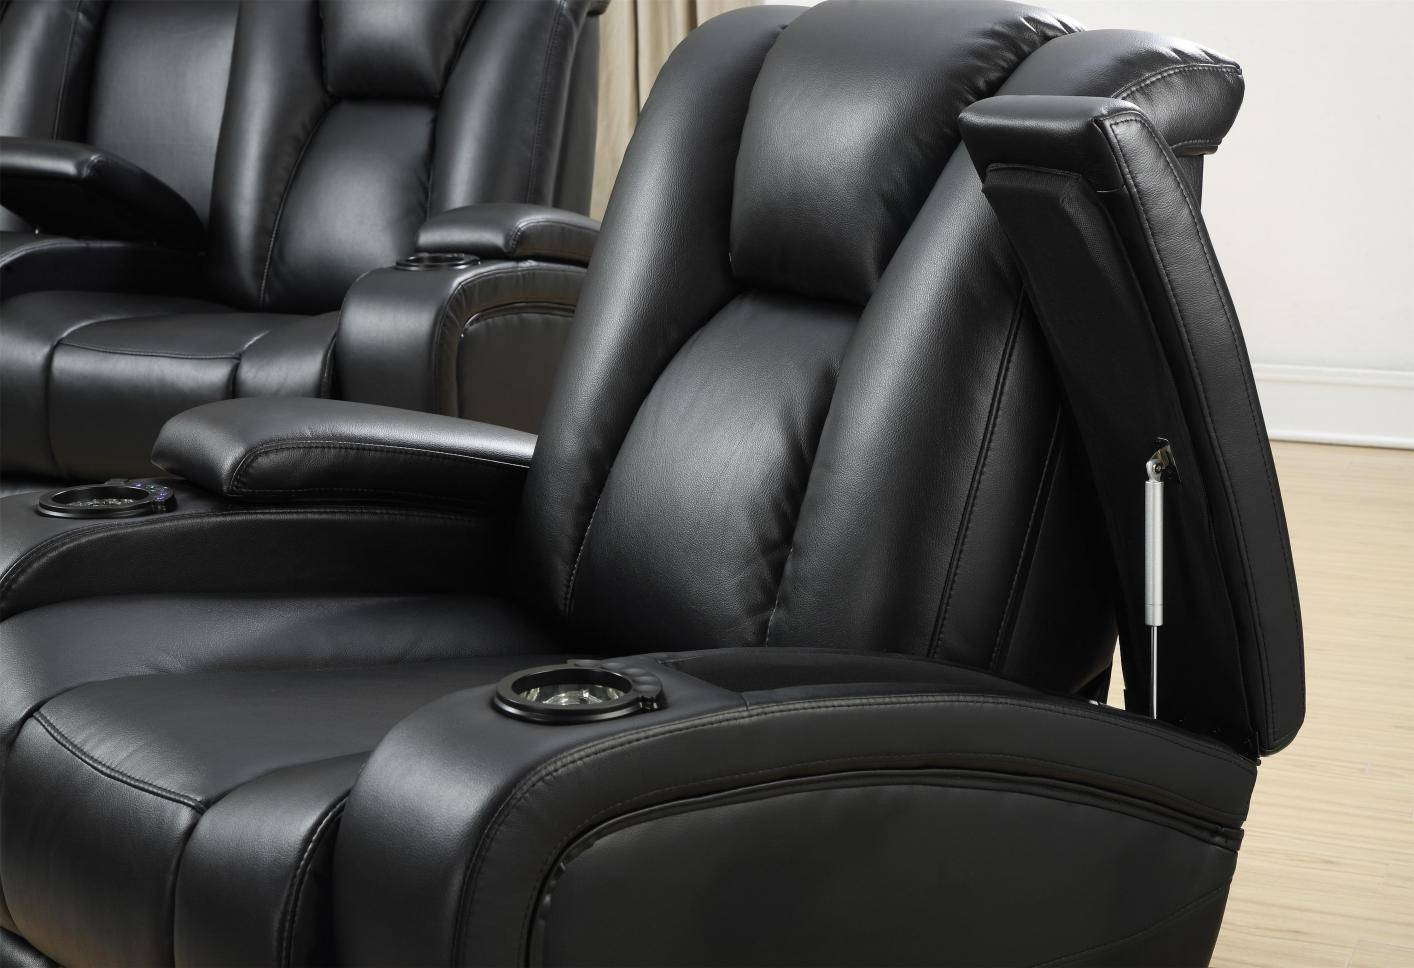 Black Leather Power Reclining Sofa - Steal-A-Sofa Furniture Outlet regarding Recliner Sofa Chairs (Image 7 of 30)